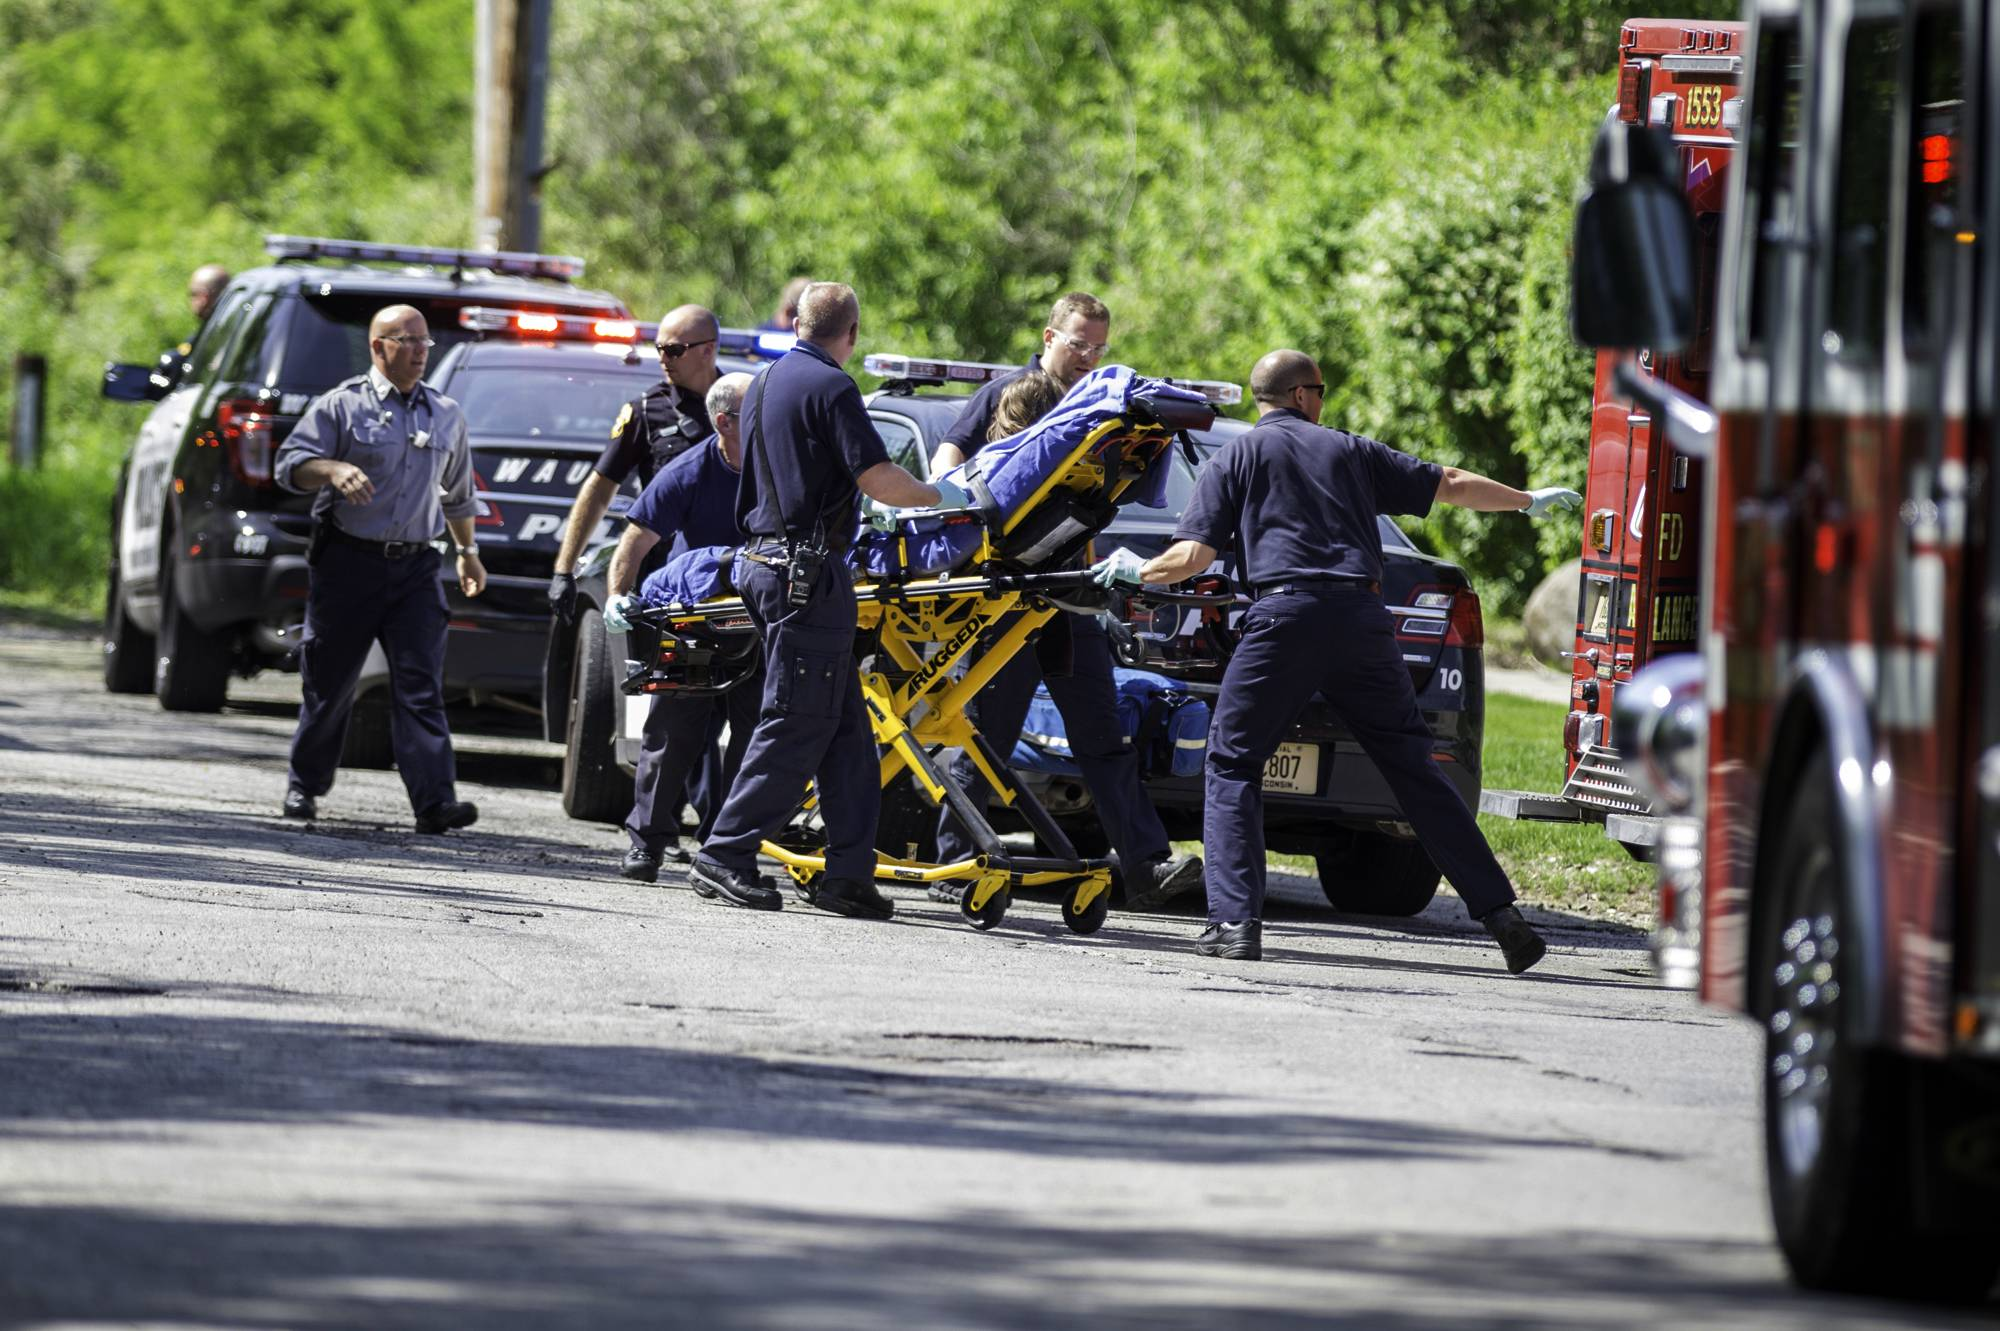 Rescue workers take a stabbing victim to the ambulance in Waukesha, Wis. Two 12-year-old Wisconsin girls accused of stabbing their friend nearly to death in the woods to please a fictional character struggled to decide who should actually do the deed and expressed at least some regret to detectives, according to court documents.